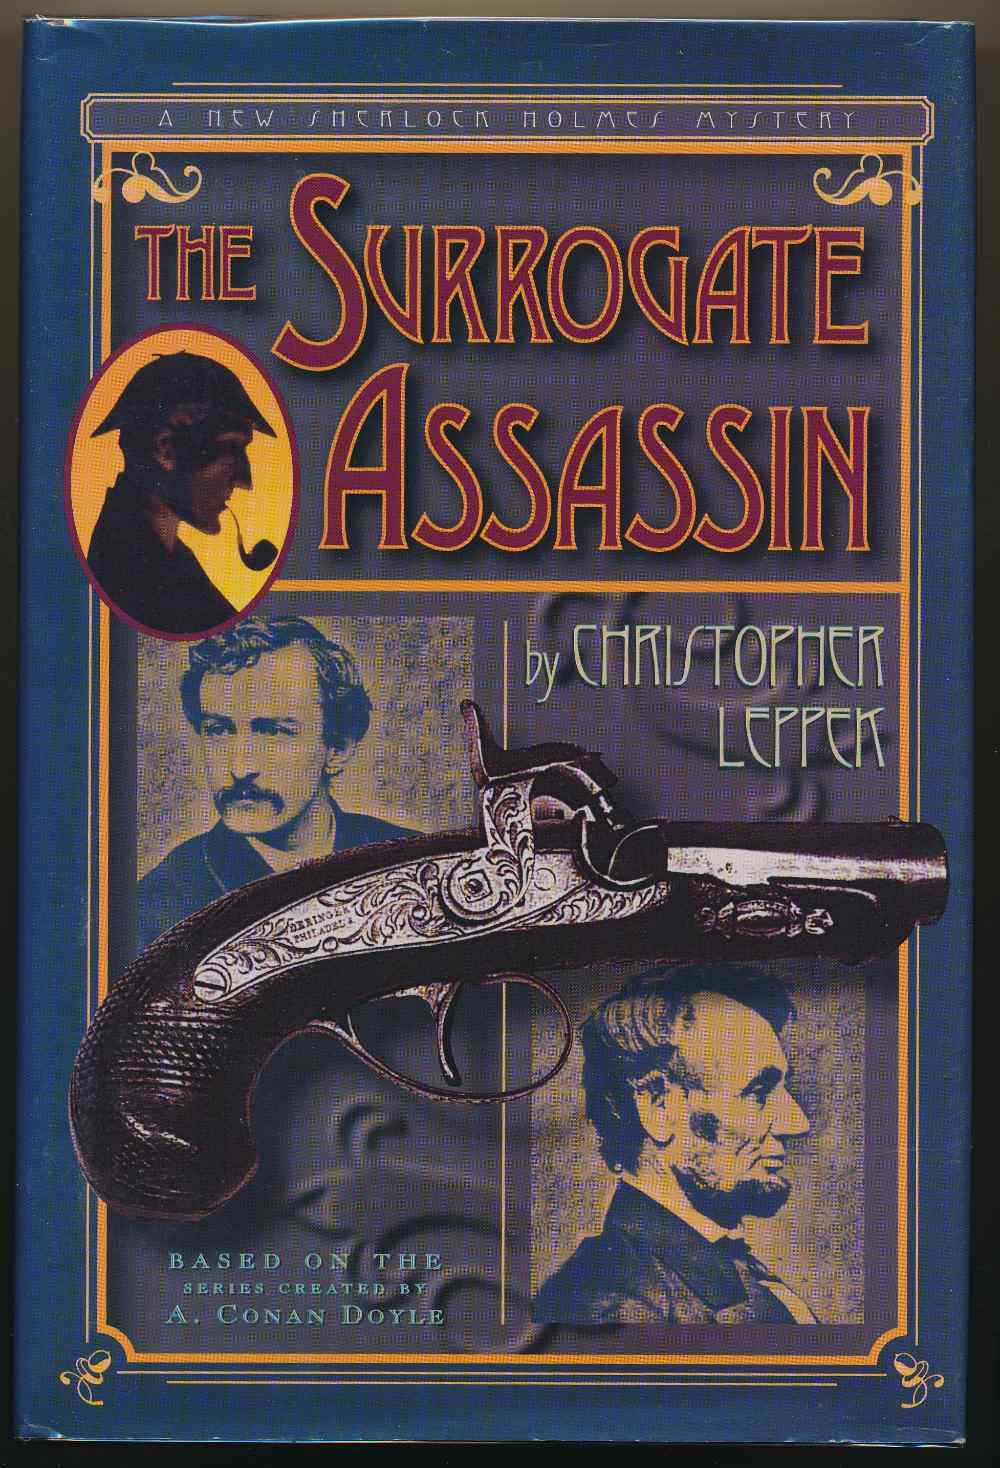 The surrogate assassin : a Sherlock Holmes mystery based on the characters created by Sir Conan Doyle